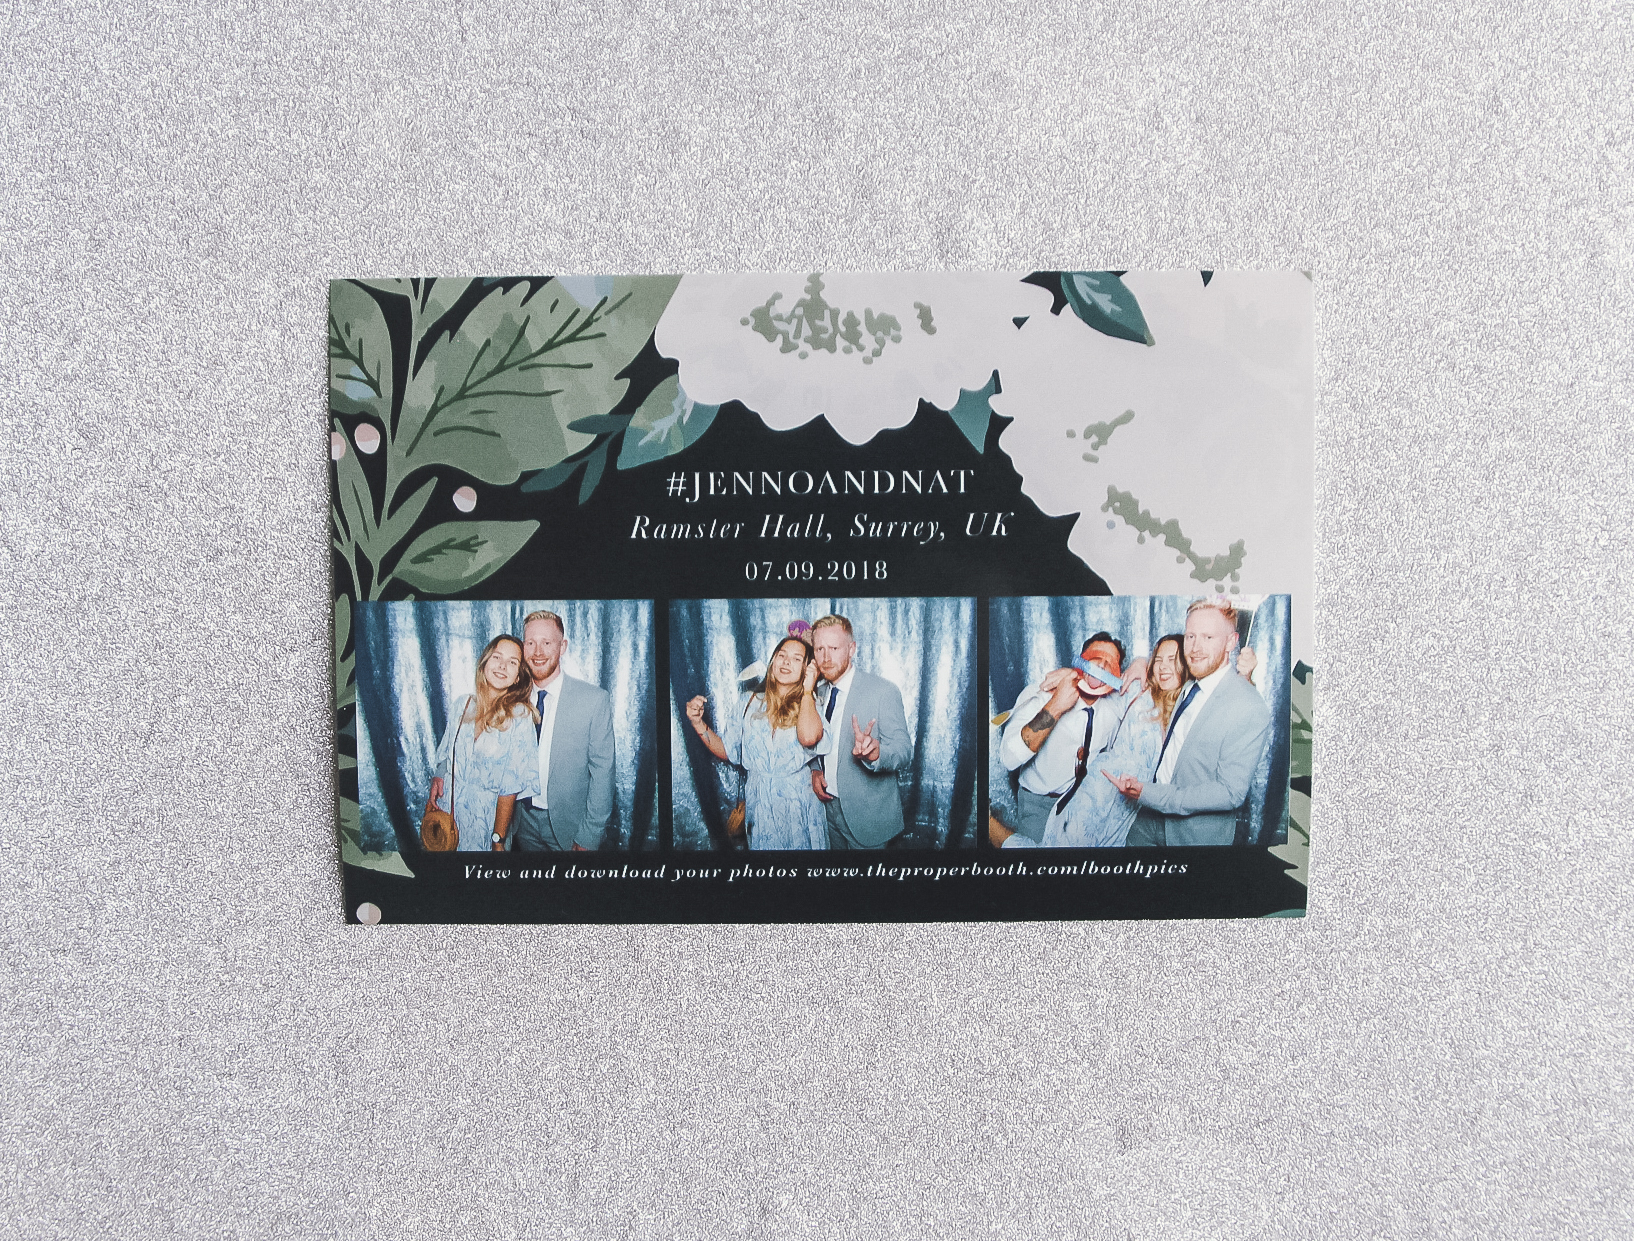 The Proper Booth Print Out Example-17.jpg